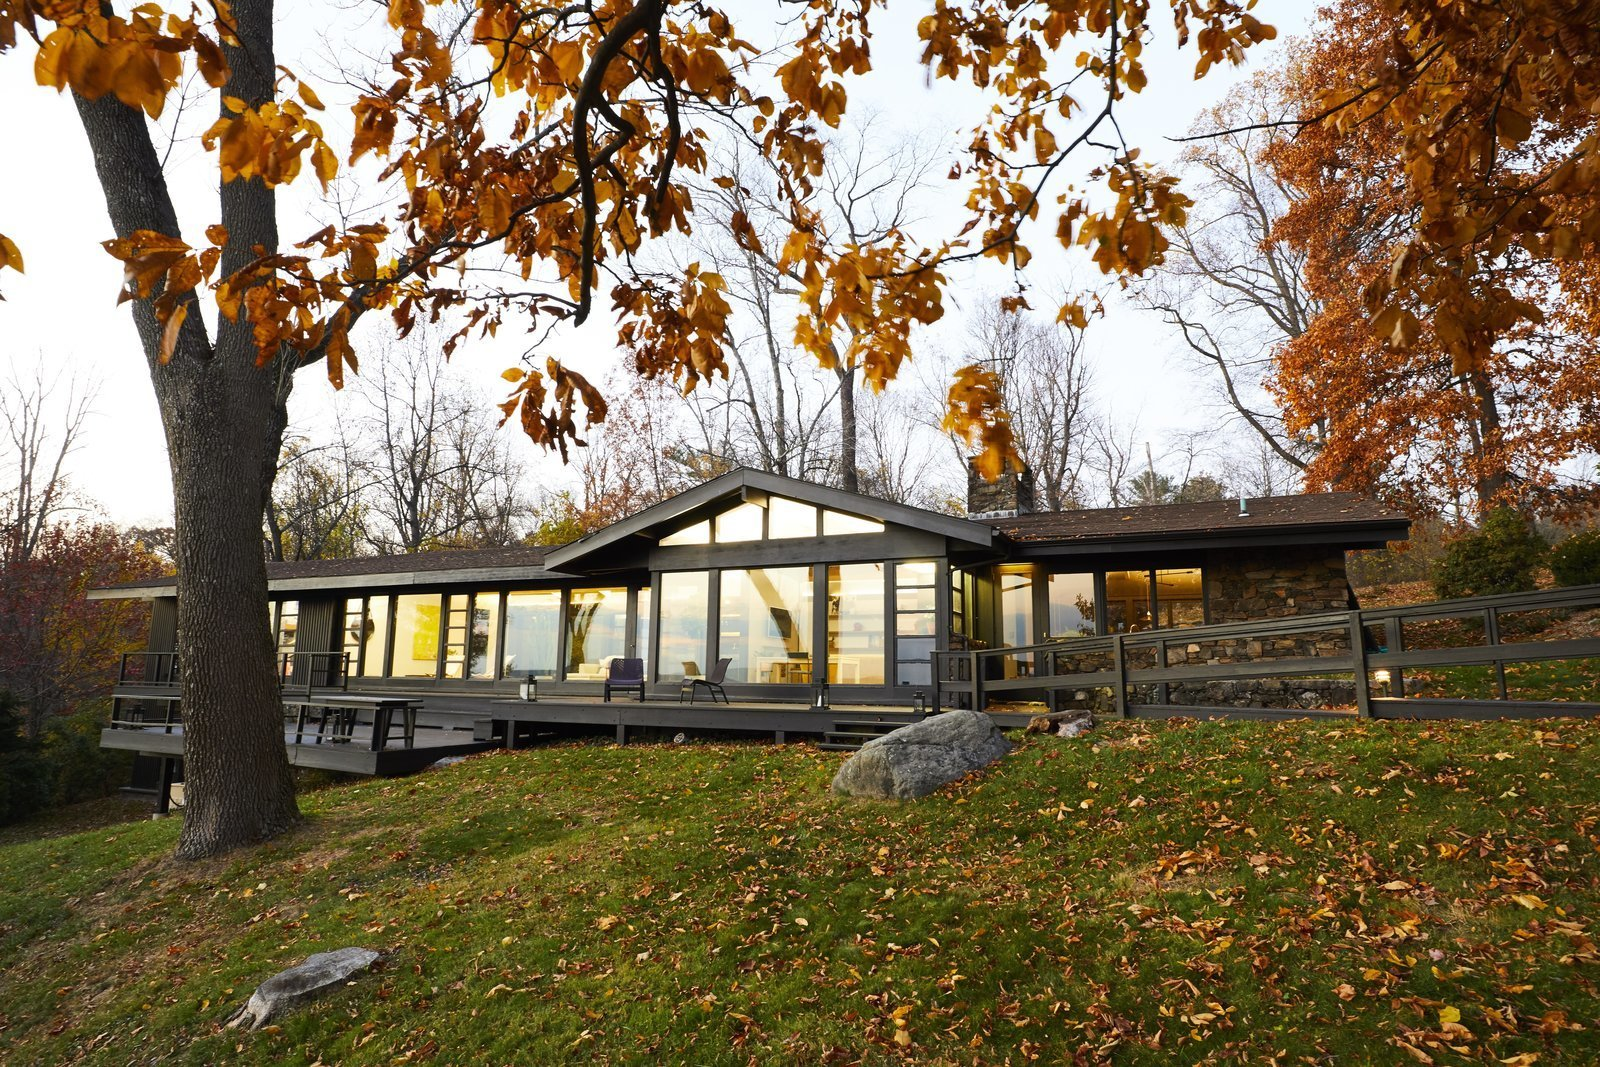 Articles about midcentury modern renovation hudson valley on Dwell.com